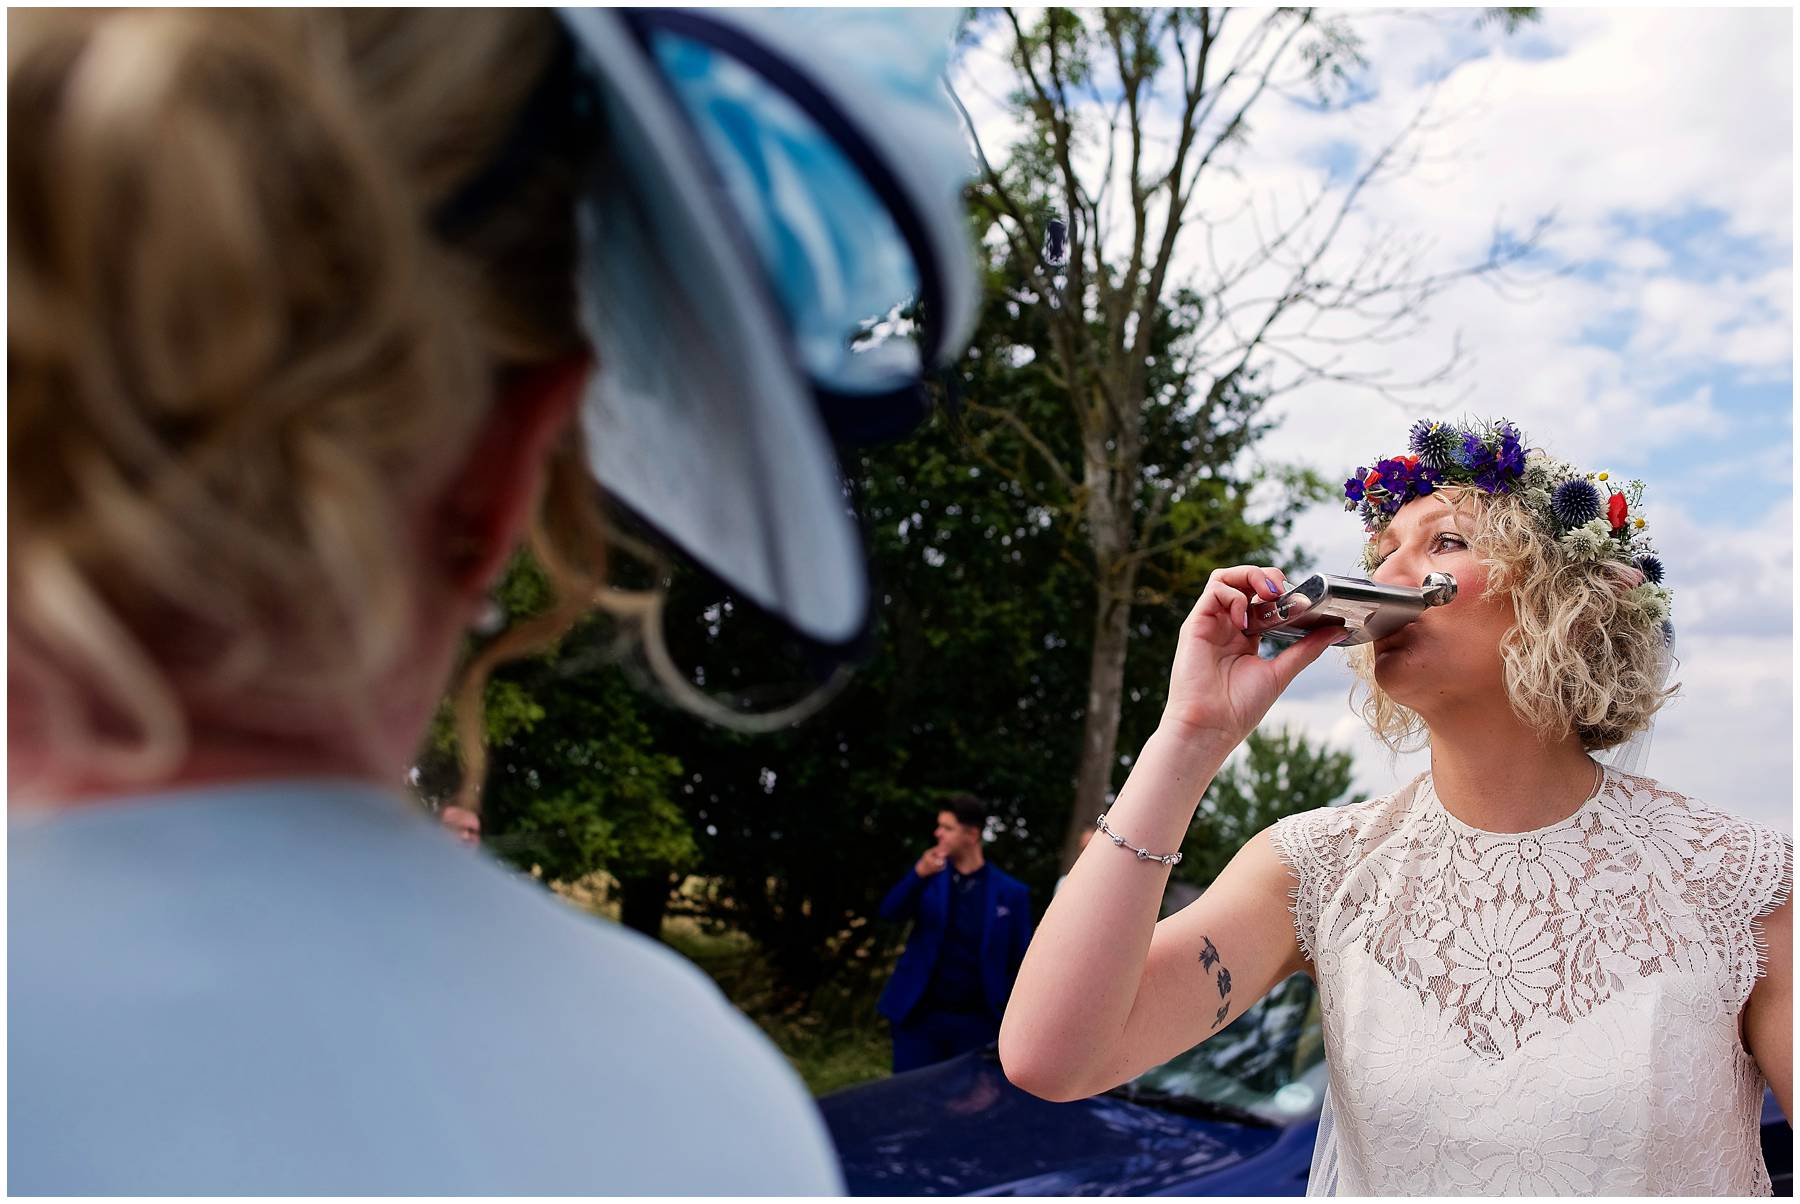 Festival bride drinking from hip flask